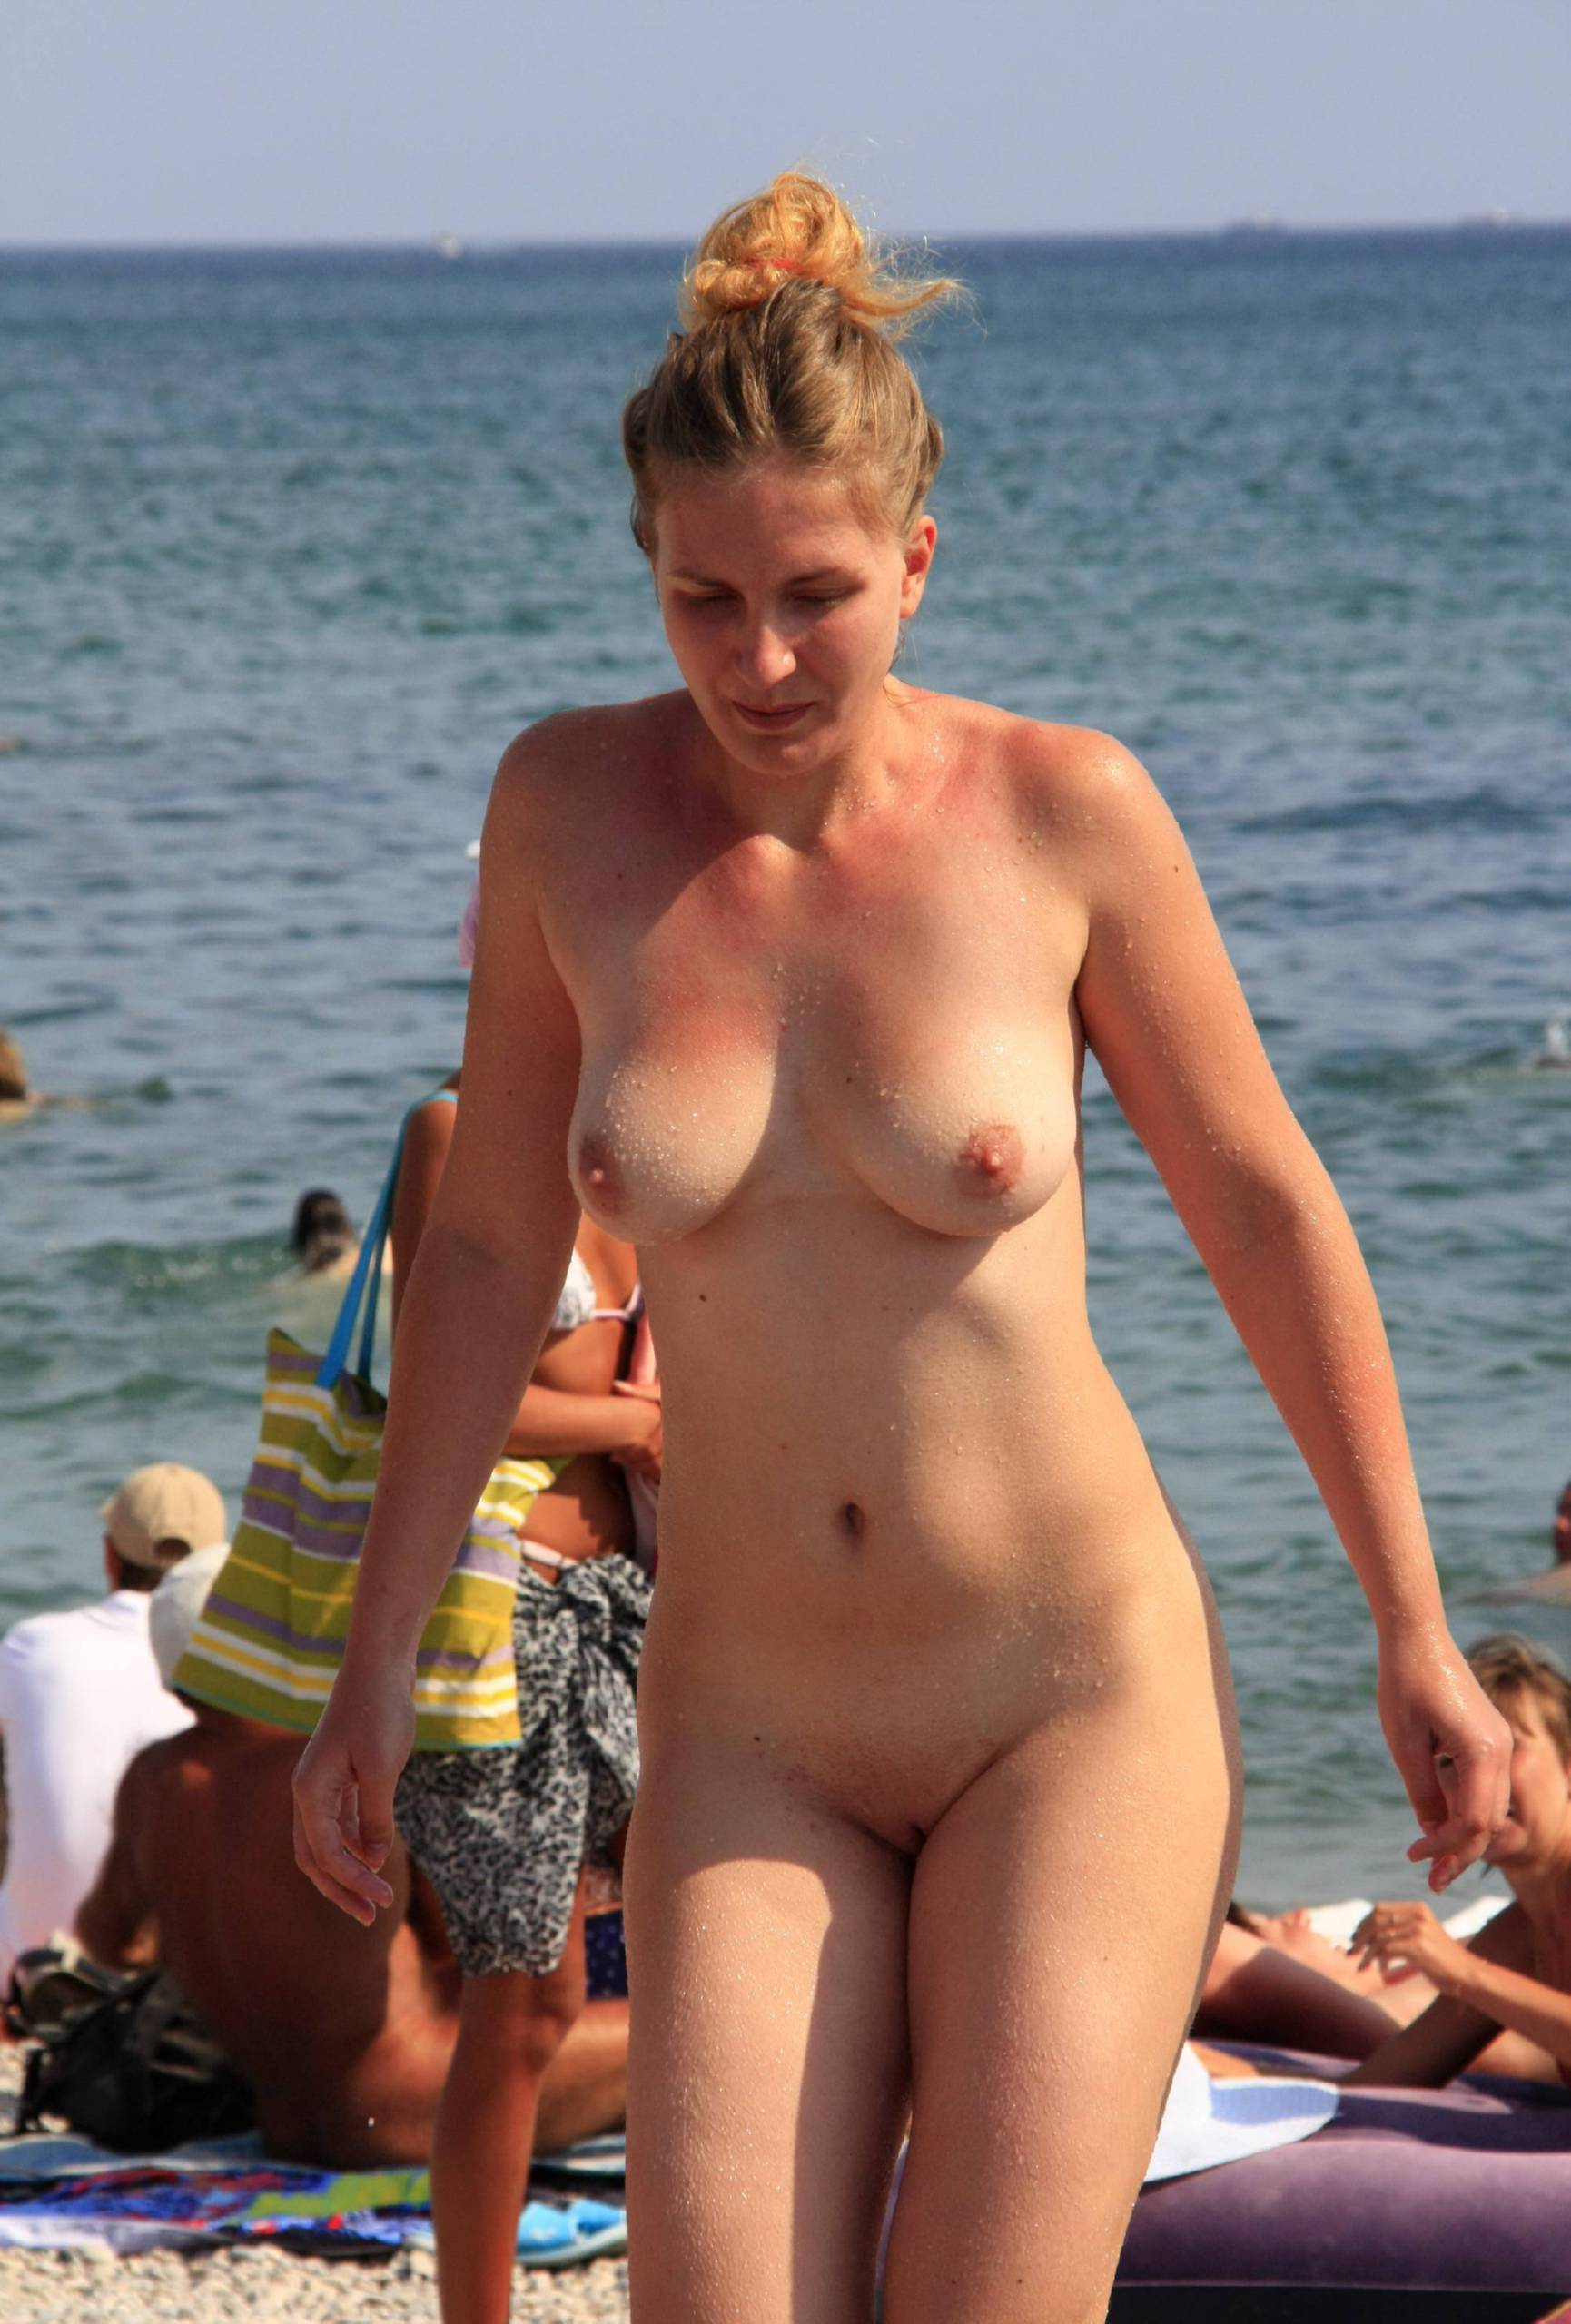 Nudist Pics Sand Beach Get Up and Go - 1